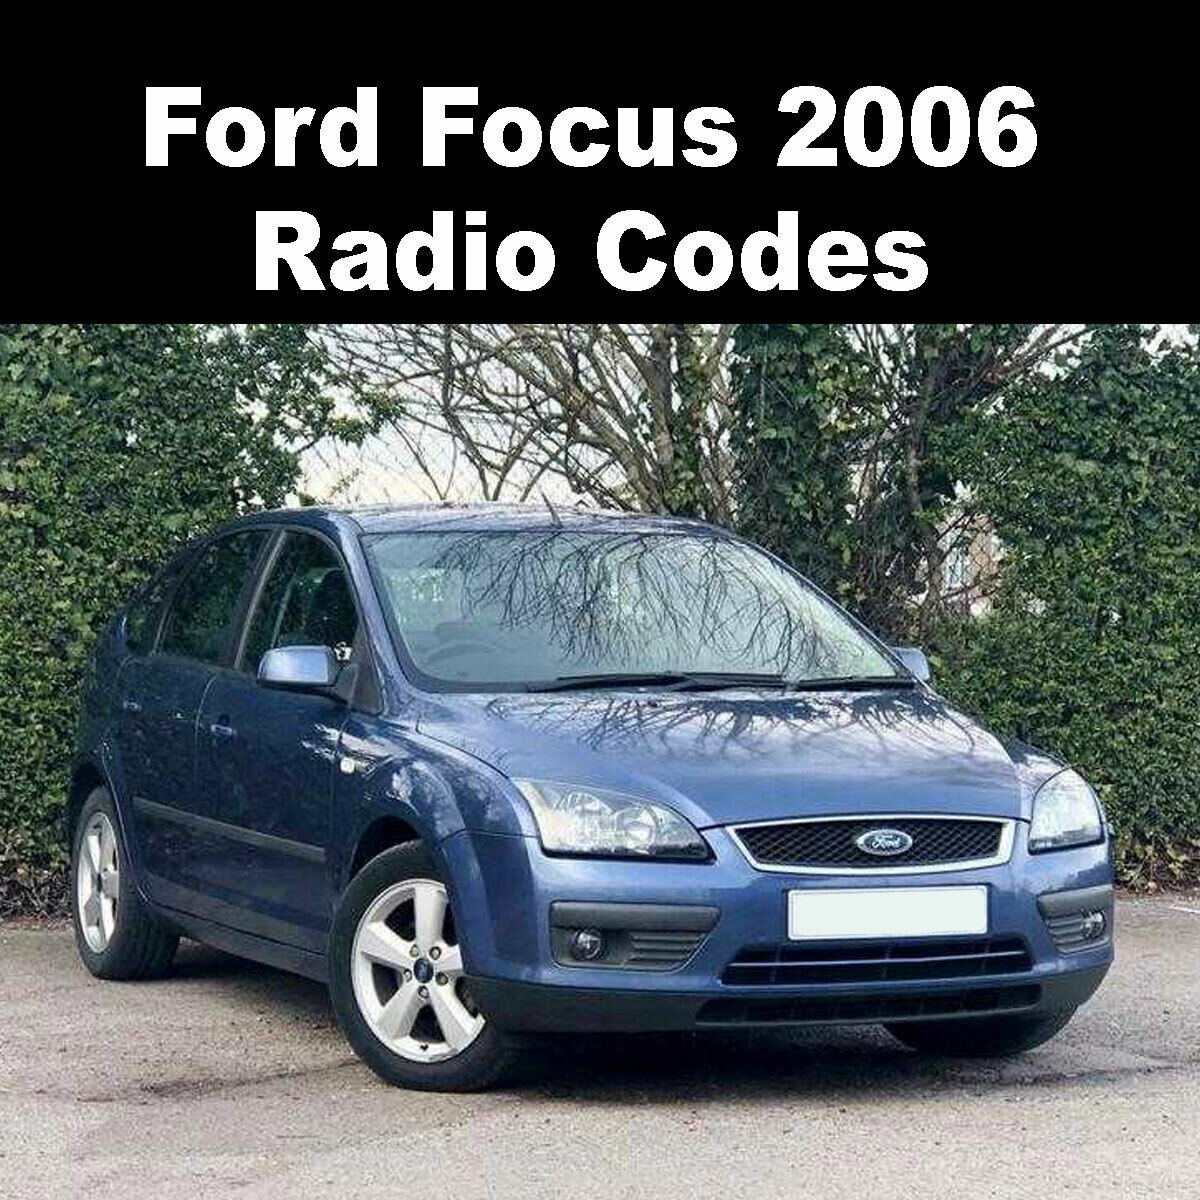 ford focus 2006 radio code stereo reset codes pin car. Black Bedroom Furniture Sets. Home Design Ideas